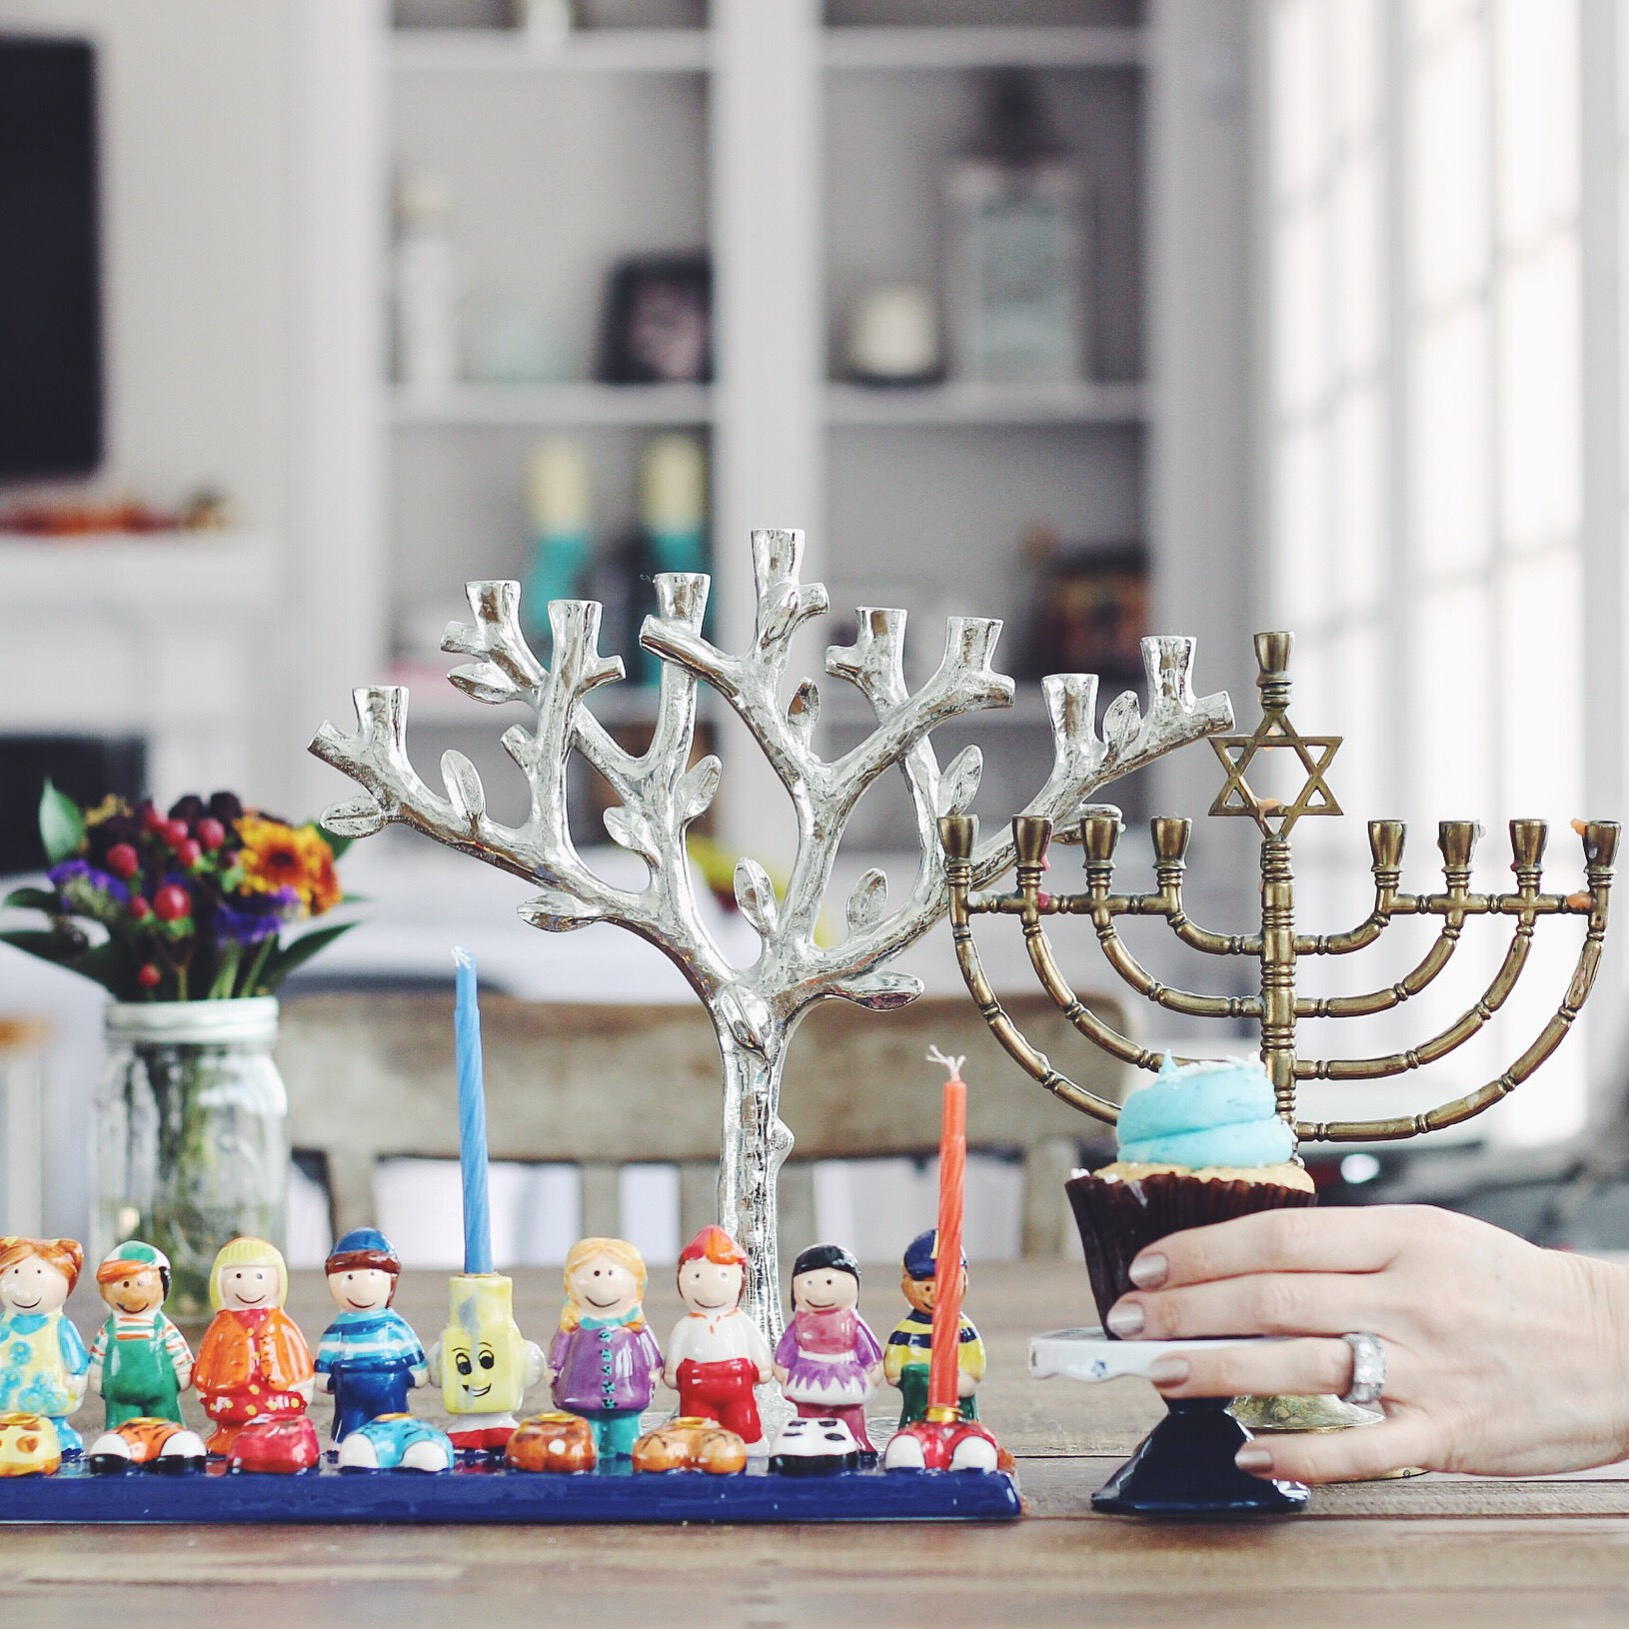 Holidays Our Way: How We Celebrate Chanukah